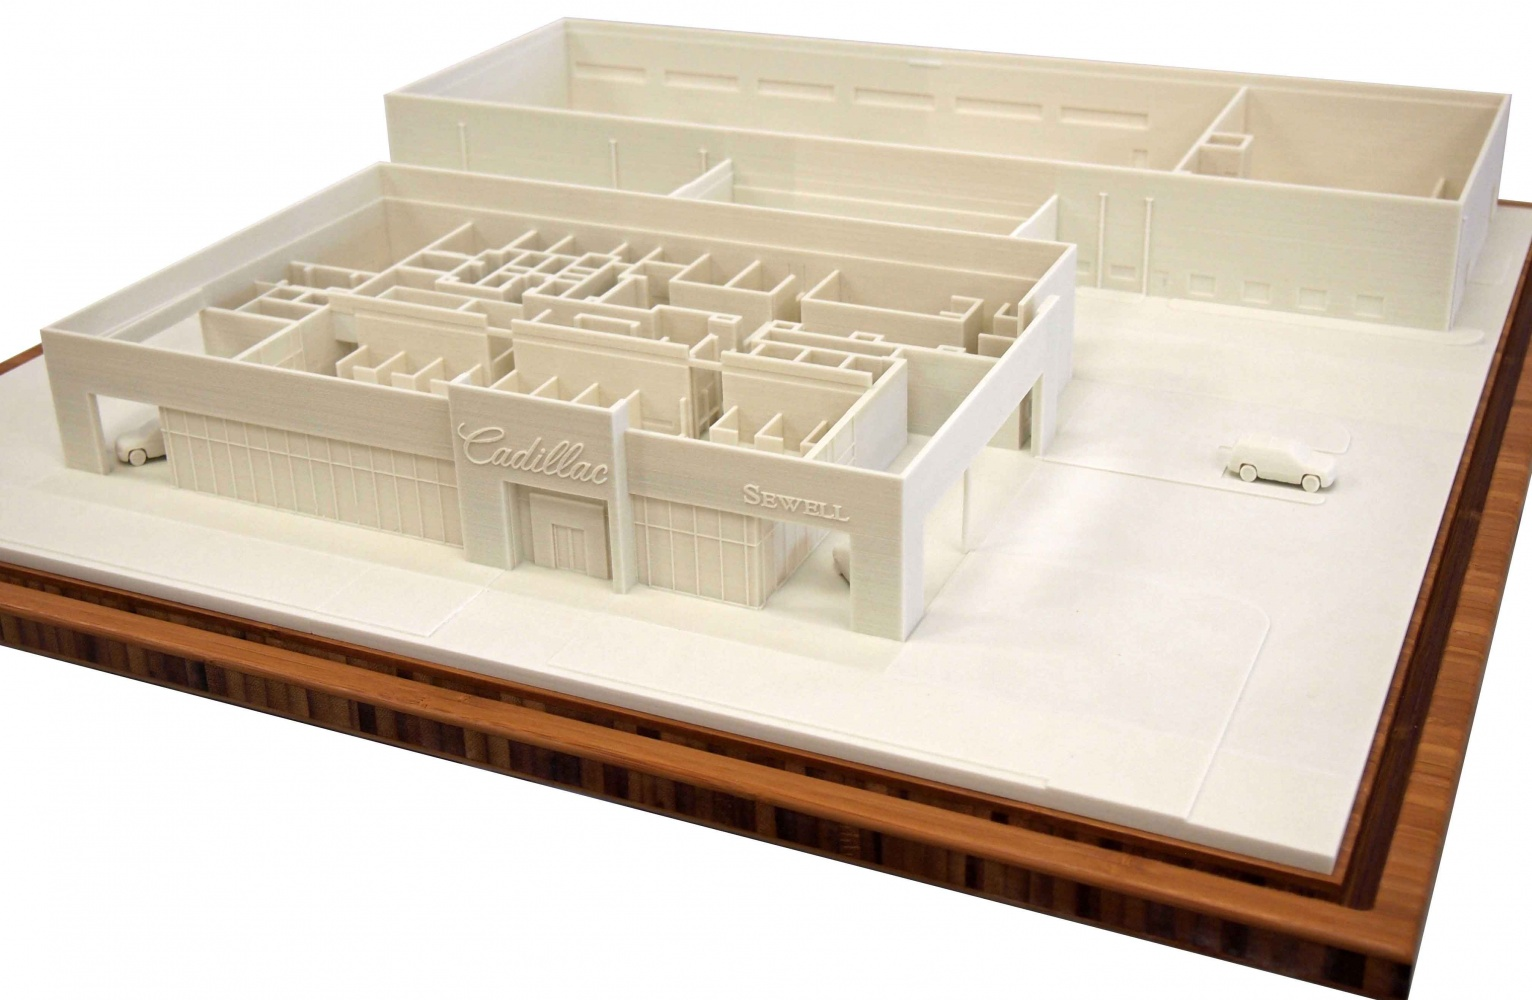 3D Print of Cadillac Dealership Building with Interior